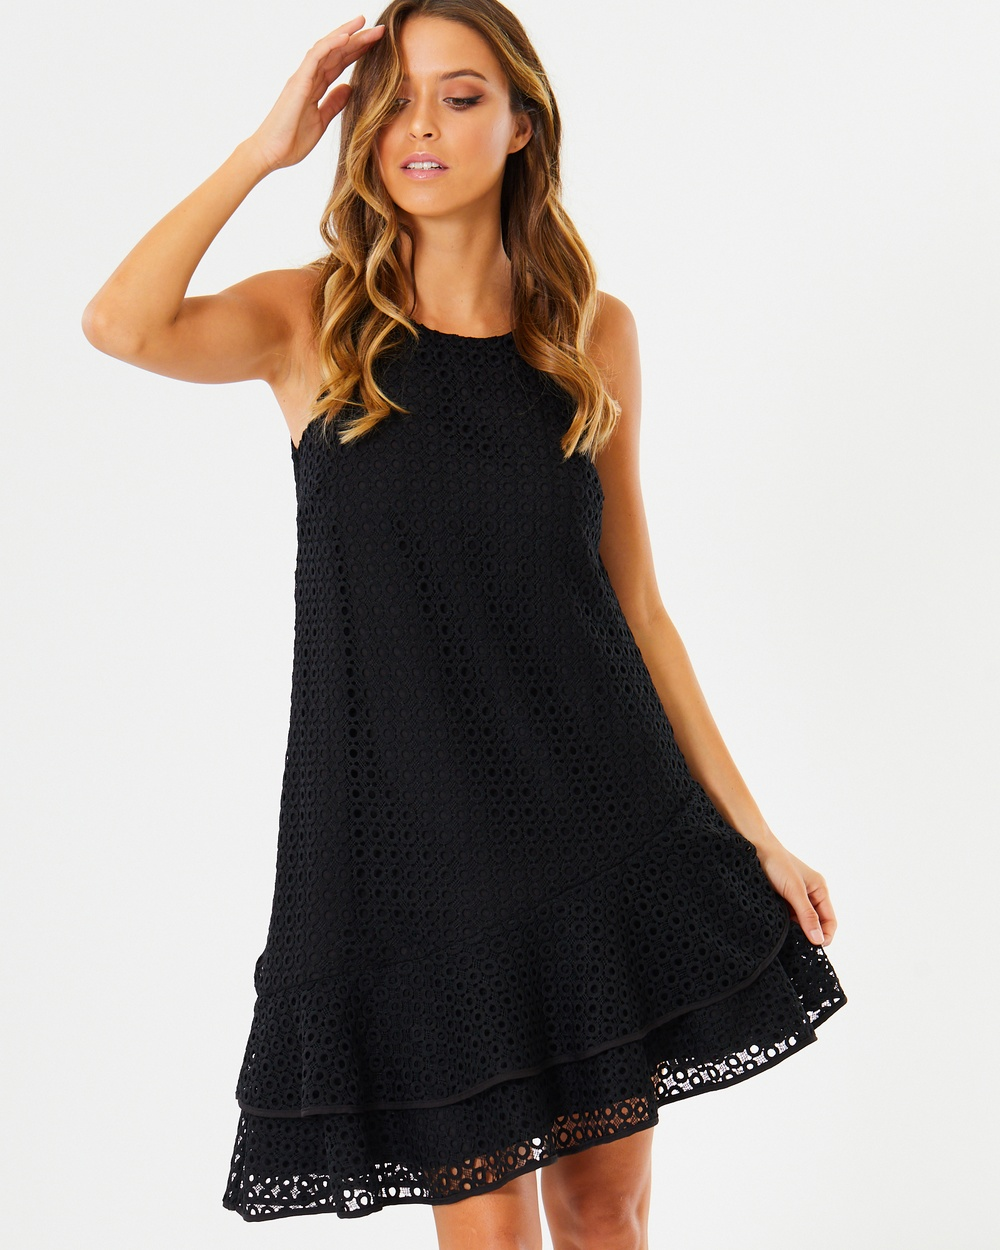 Calli Melina Frill Hem Dress Dresses Black Lace Melina Frill-Hem Dress